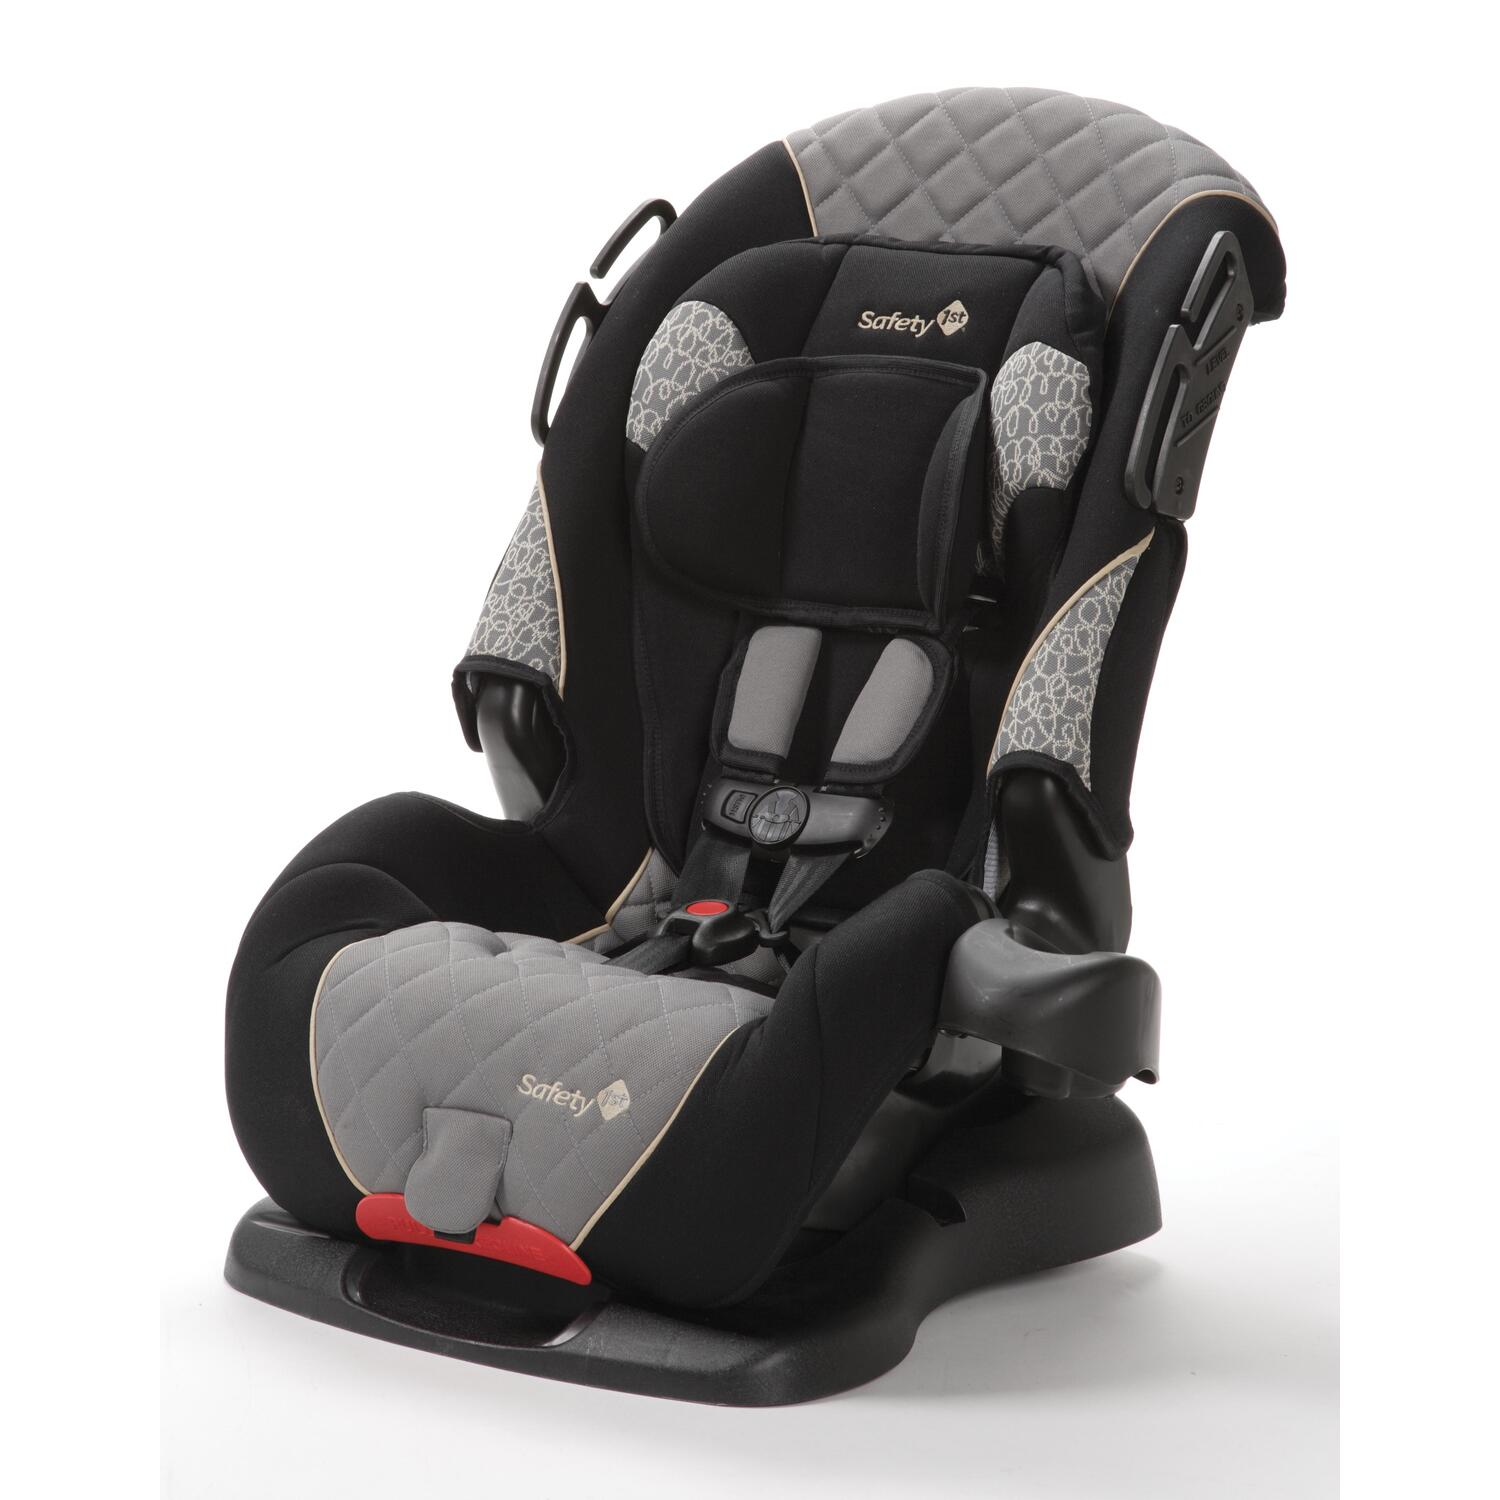 safety 1st safety 1st all in one convertible car seat scribbles by oj commerce cc045anx. Black Bedroom Furniture Sets. Home Design Ideas